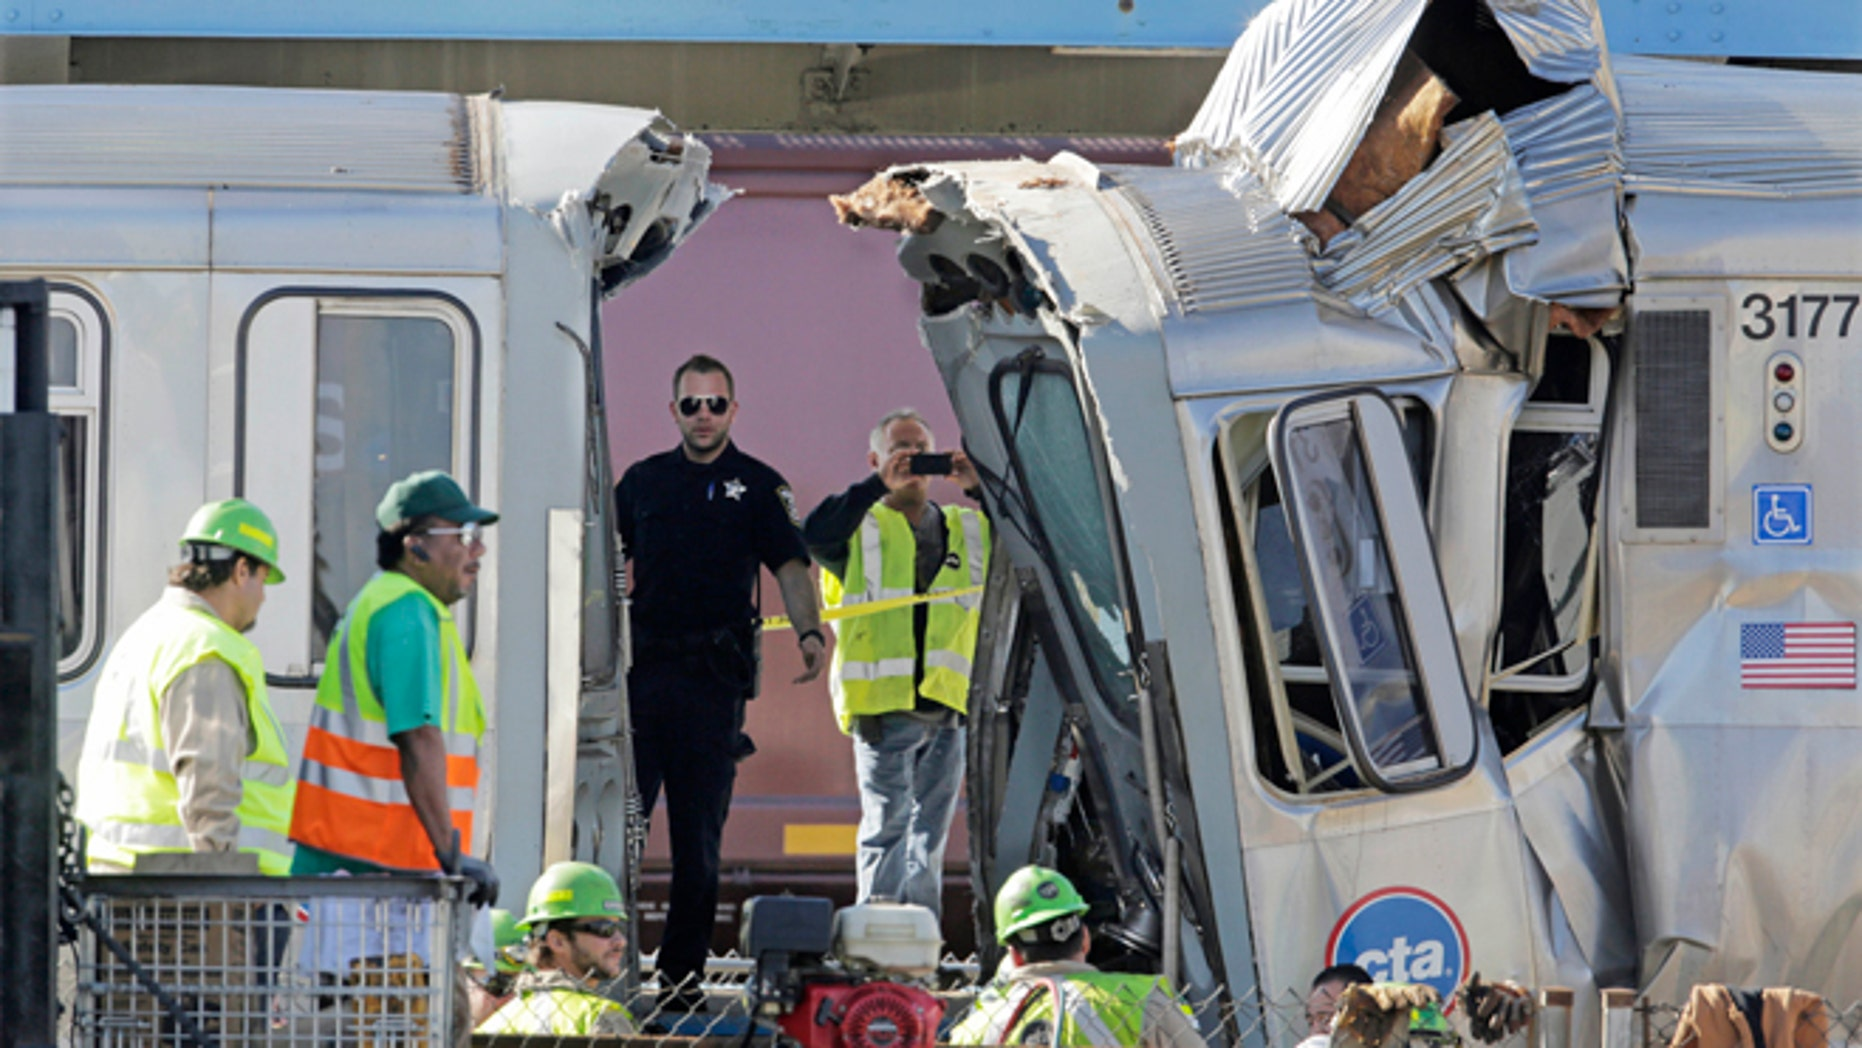 Sept. 30, 2013: Authorities inspect the wreckage of two Chicago Transit Authority trains that crashed in Forest Park, Ill.